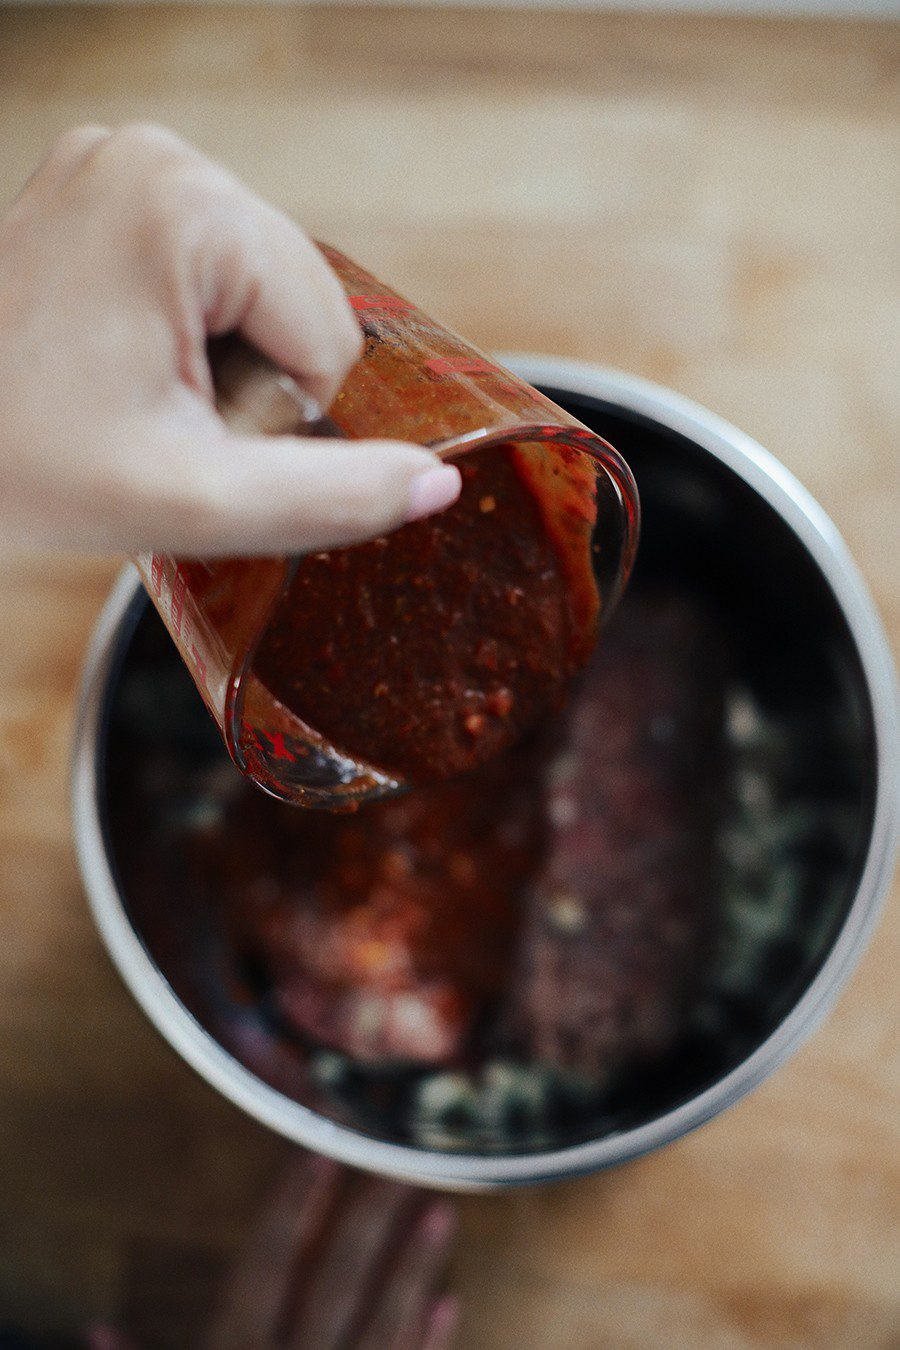 Easy Weeknight Crockpot Meals: Slow Cooker Barbacoa Beef Tacos   Omaha Steaks by popular Florida lifestyle blog, Fresh Mommy Blog: image of a woman pouring a marinade on some raw beef in a slow cooker.